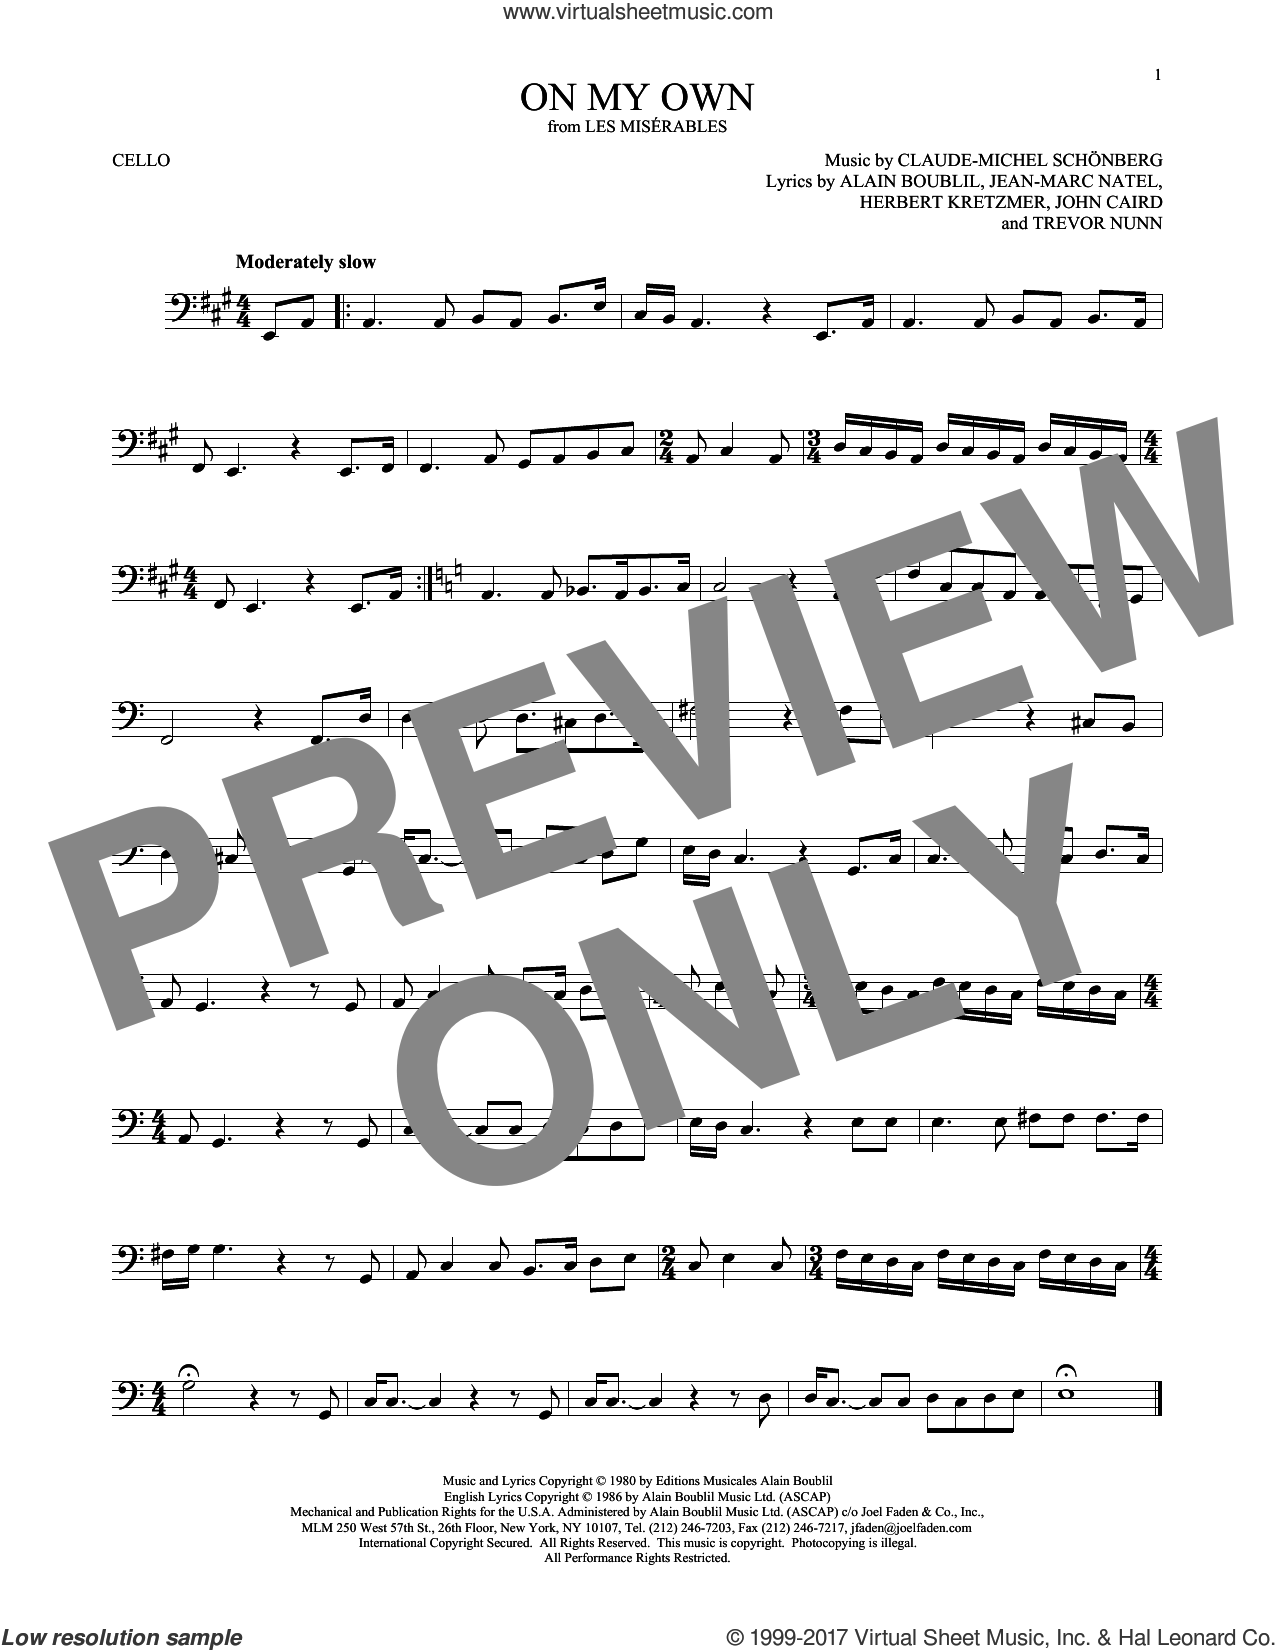 On My Own (from Les Miserables) sheet music for cello solo by Alain Boublil, Claude-Michel Schonberg, Claude-Michel Schonberg, Herbert Kretzmer, Jean-Marc Natel, John Caird and Trevor Nunn, intermediate skill level